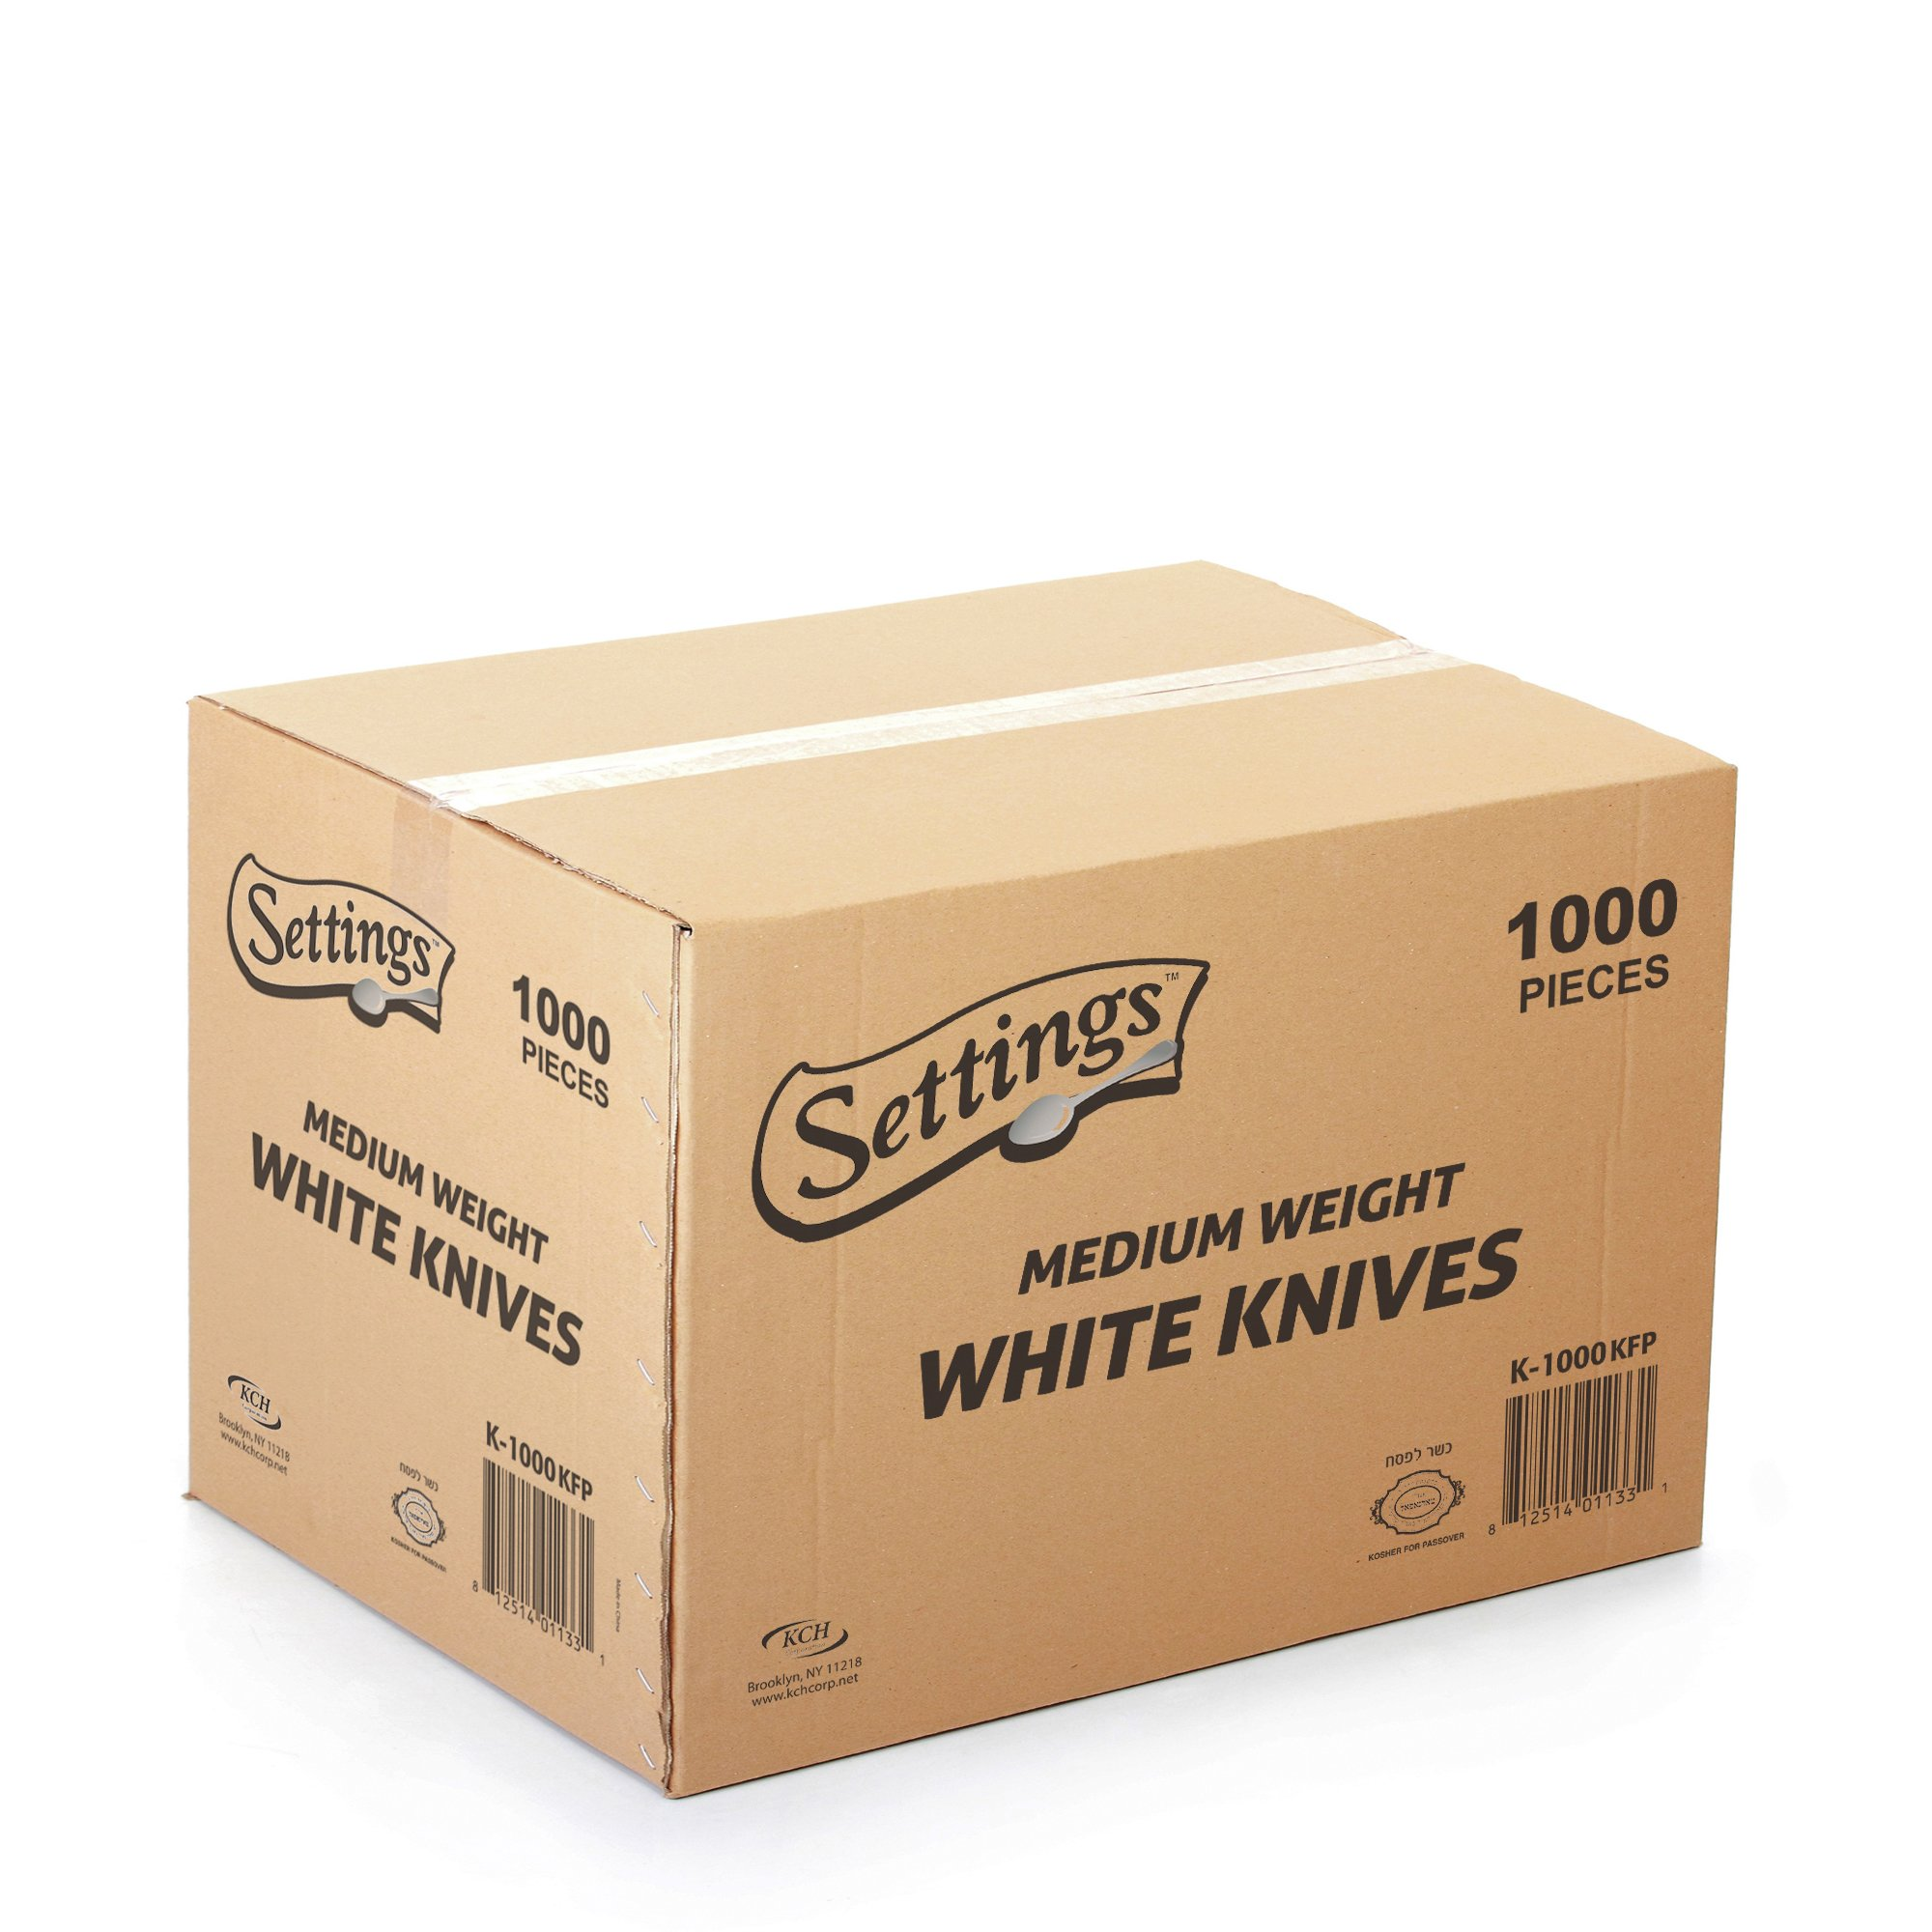 [1000 Count] Settings Plastic White Knives, Practical Disposable Cutlery, Great For Home, Office, School, Party, Picnics, Restaurant, Take-out Fast Food, Outdoor Events, Or Every Day Use, 1 Box by Settings